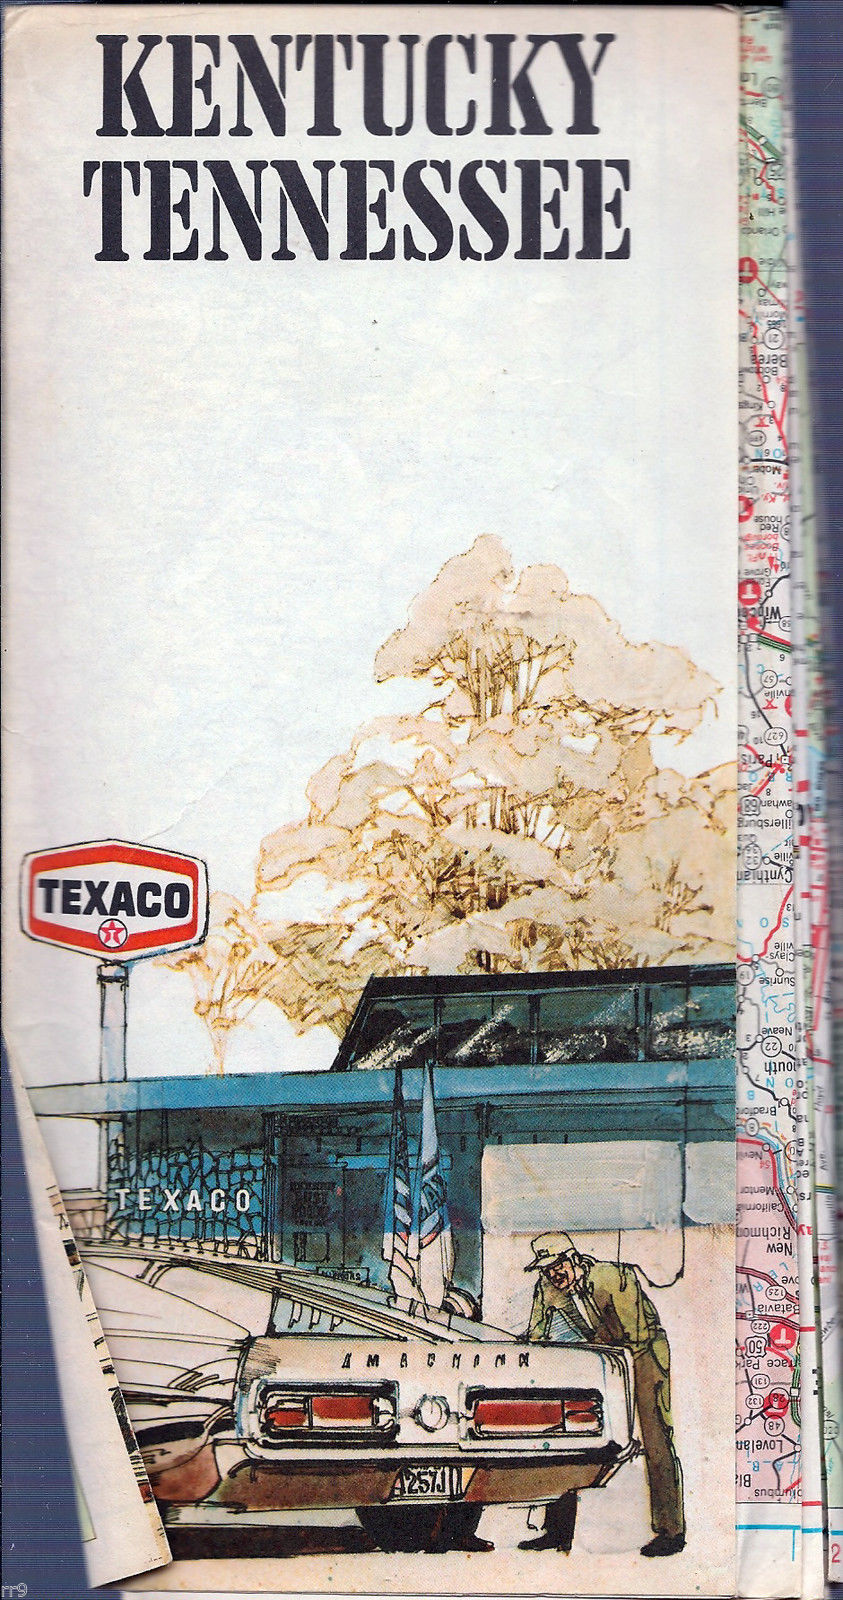 Primary image for Kentucky Tennessee Texaco 1975 Map